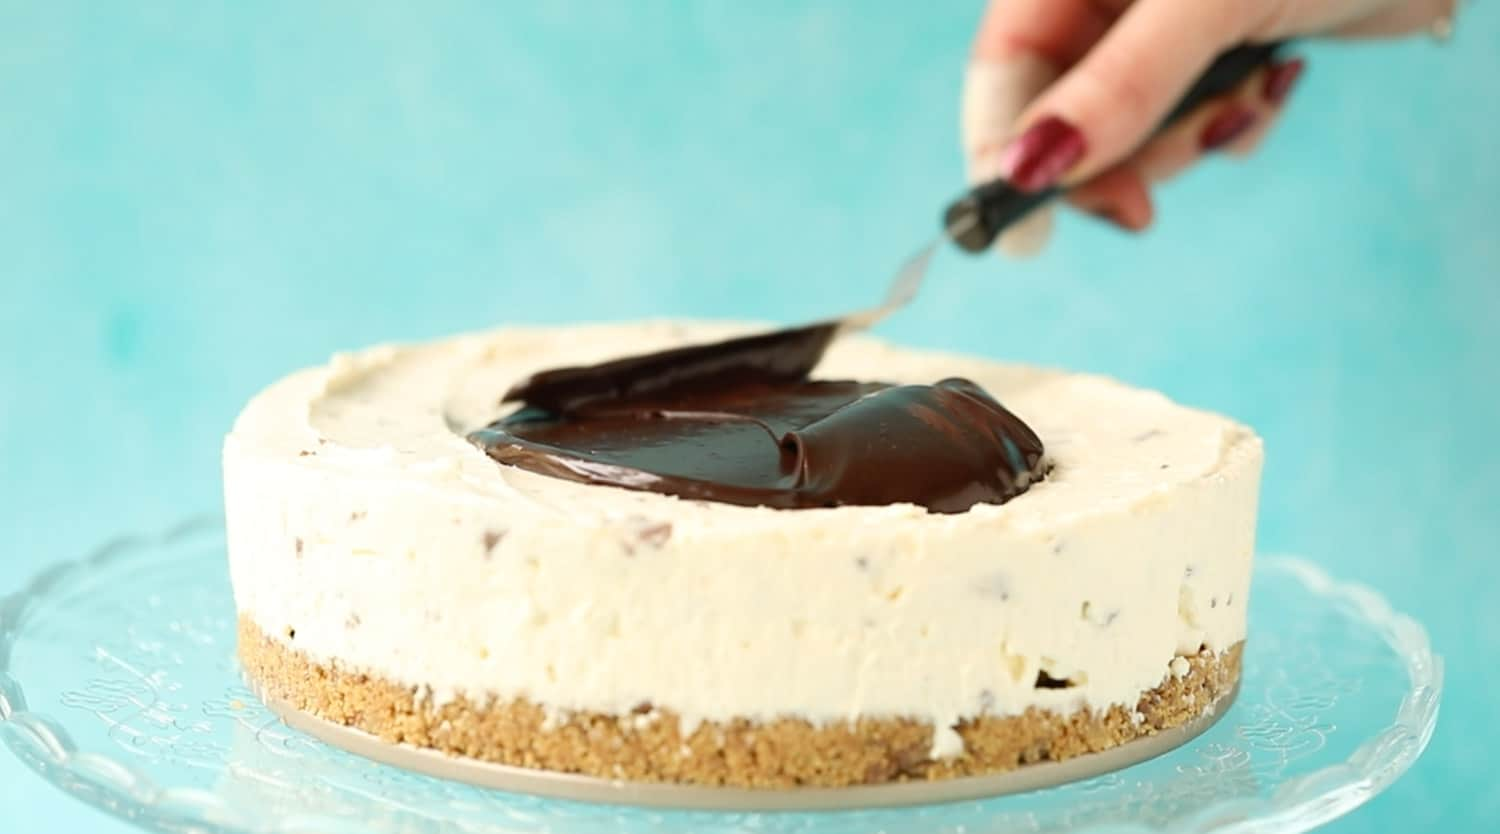 Spreading a cheesecake with chocolate ganache